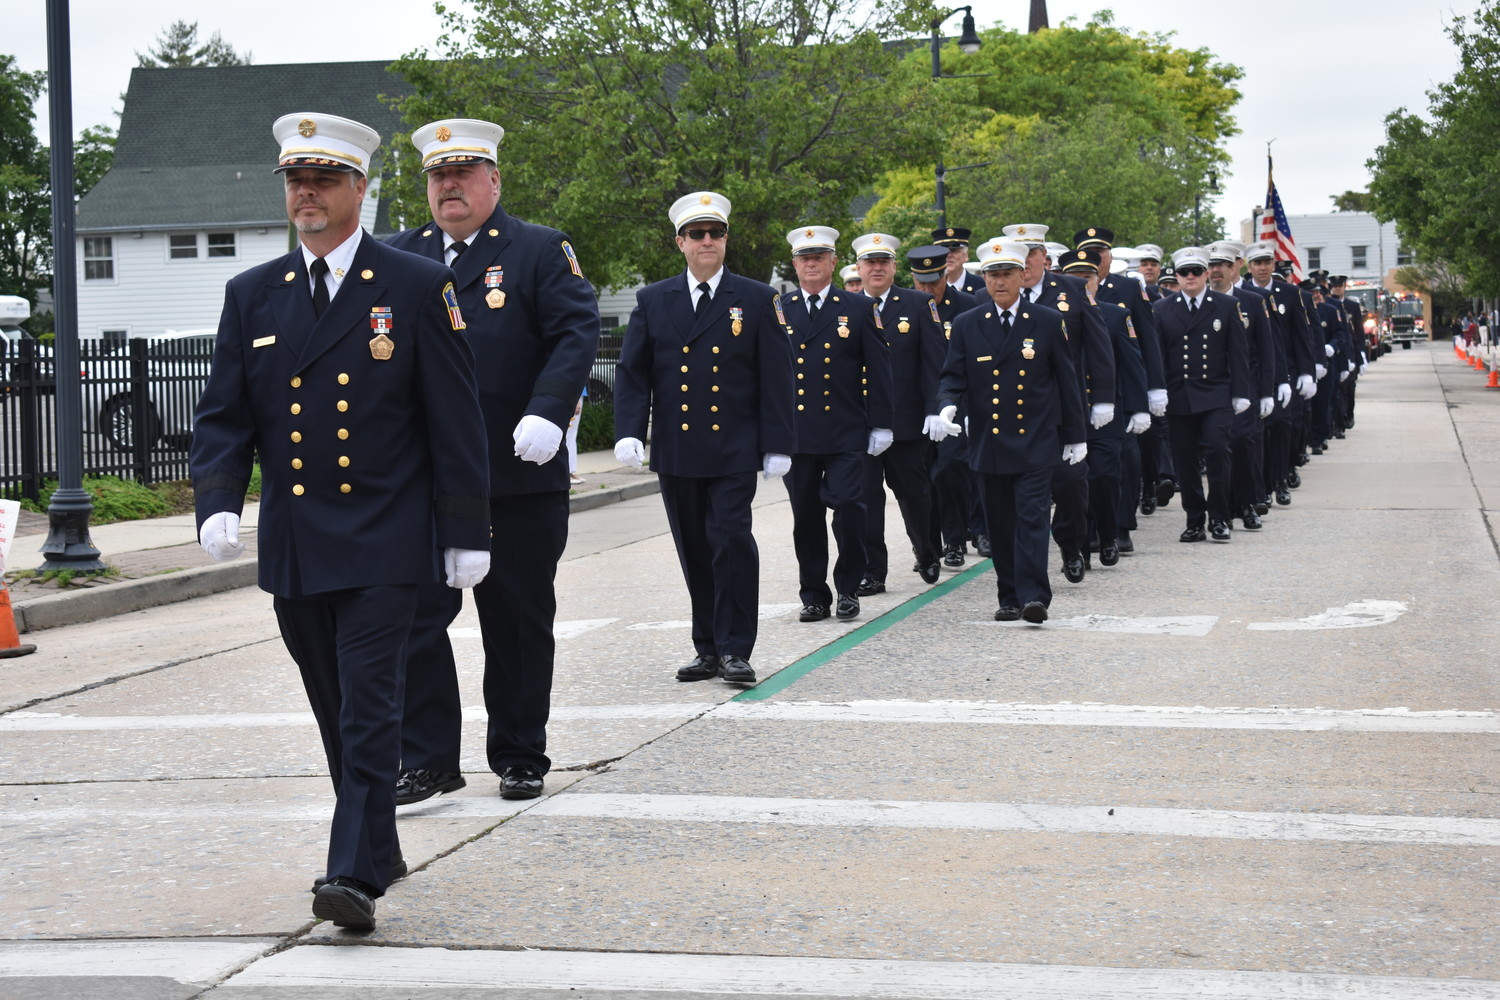 Members of the Rockville Centre Fire Department, led by Chief Brian Cook, marched in the parade.